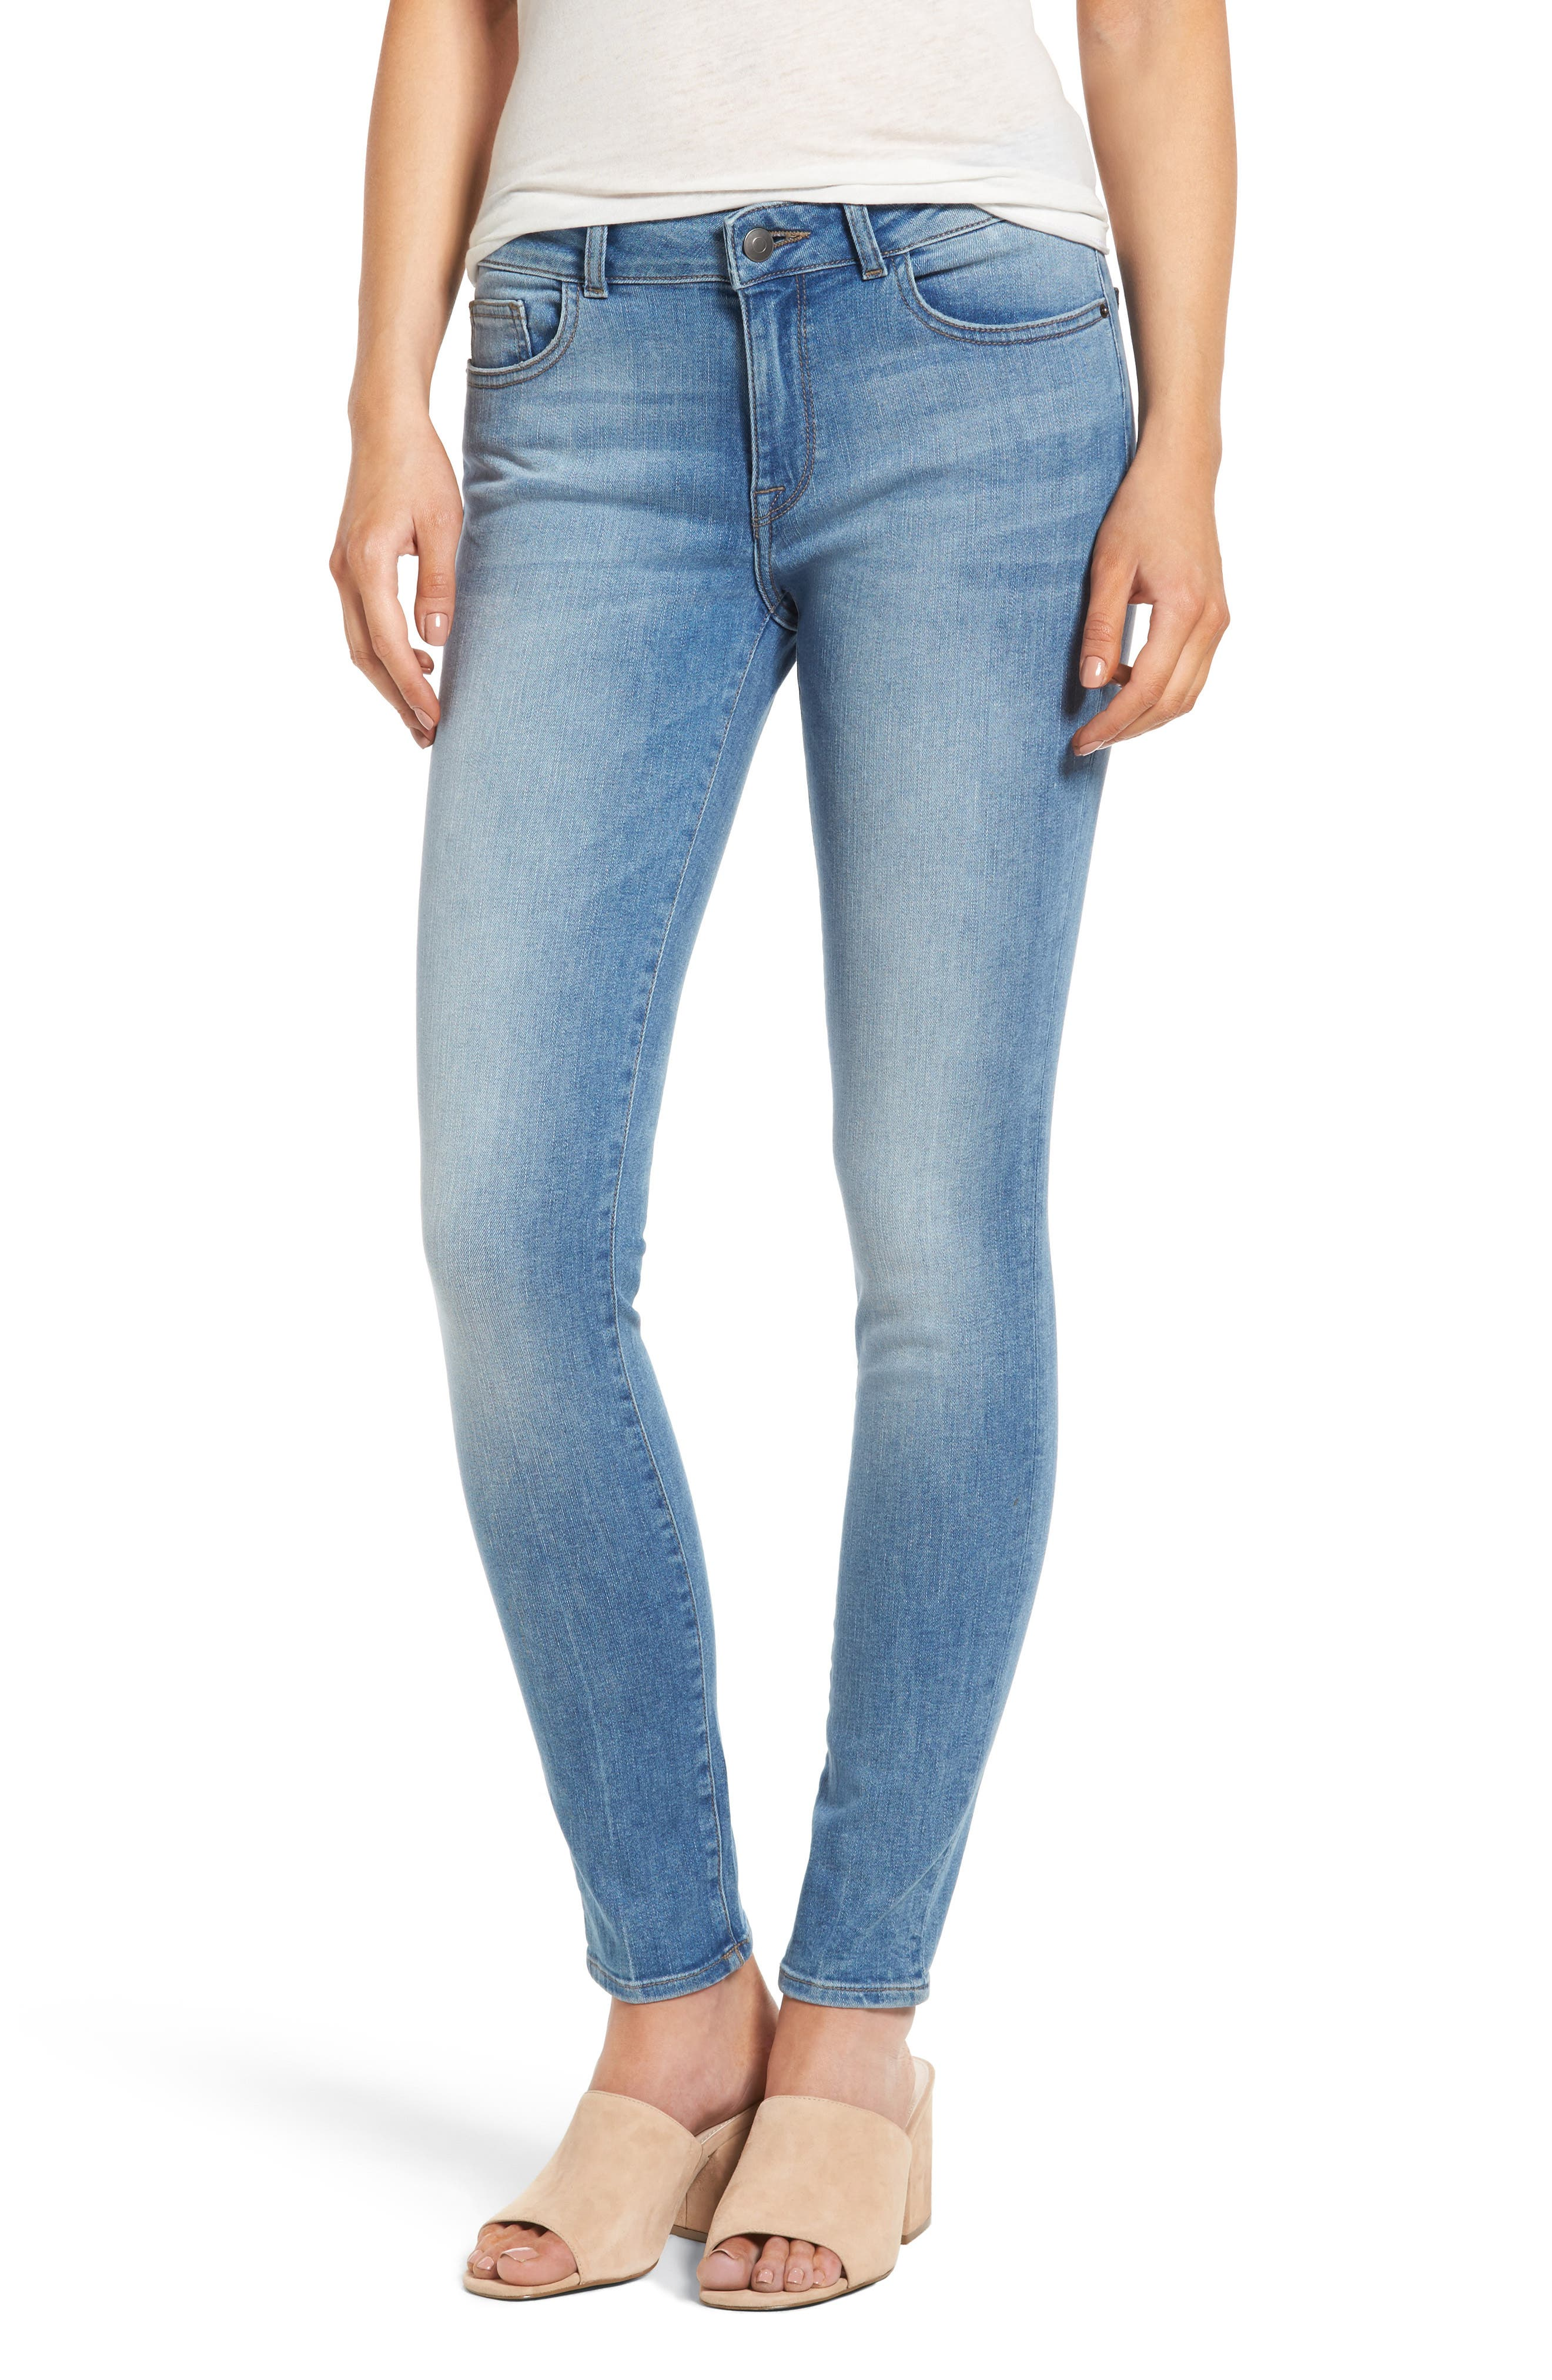 Main Image - DL1961 Florence Instasculpt Skinny Jeans (Atwood)